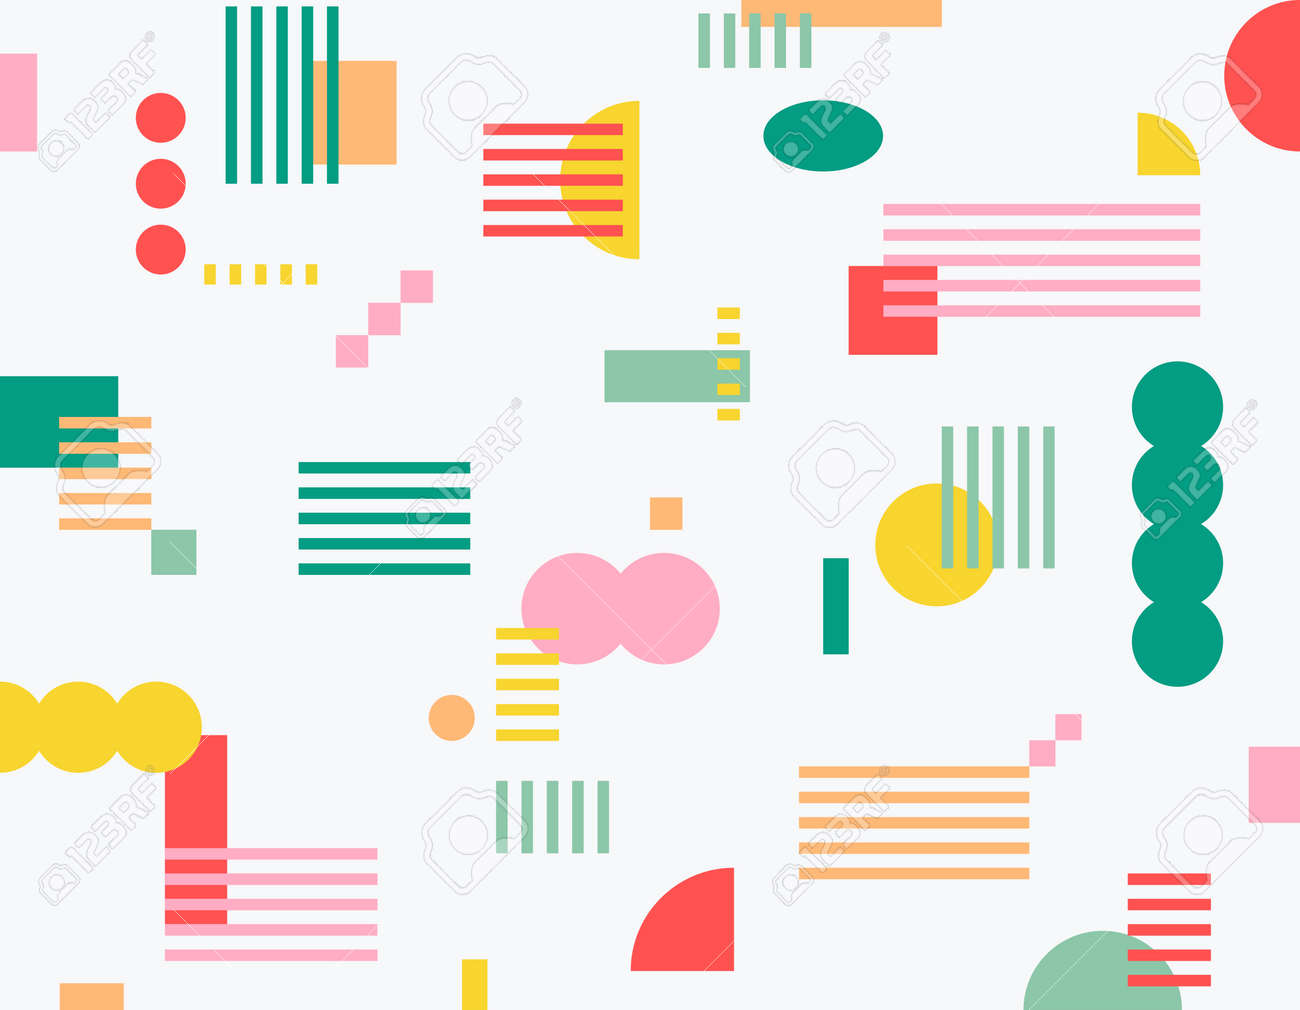 Striped squares and circular shapes scattered in various sizes on a white background. Simple pattern design template. - 172465755